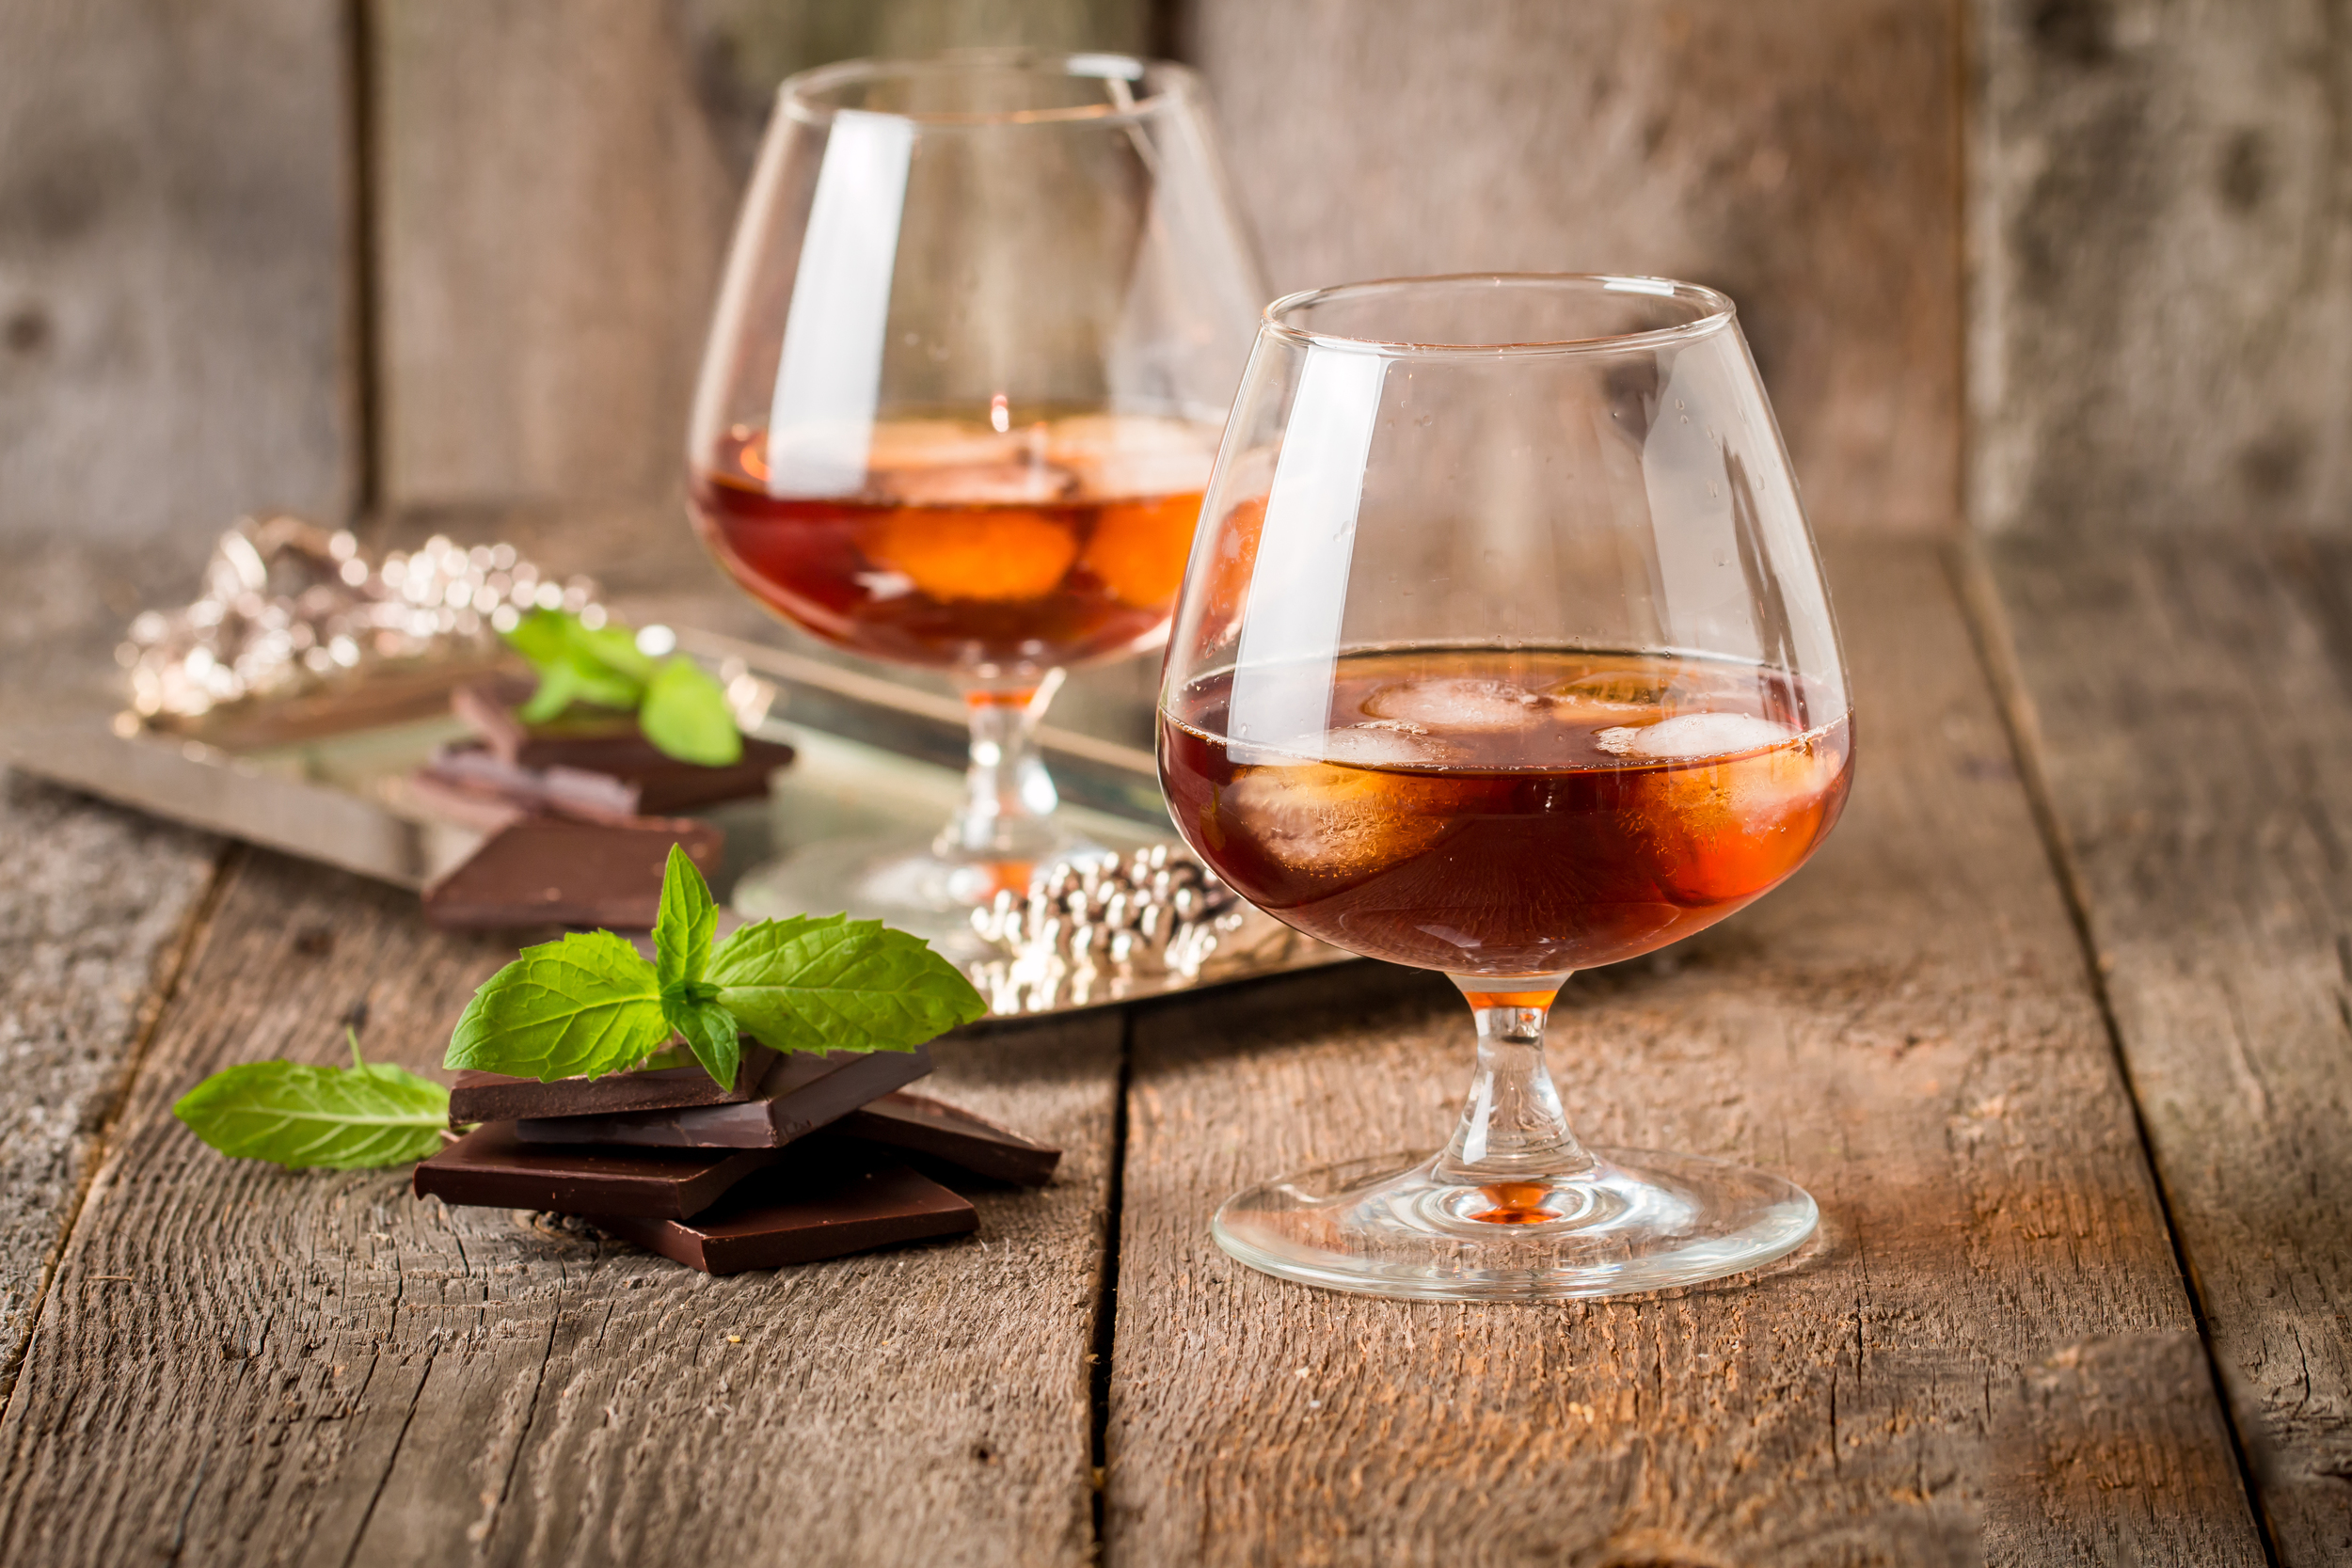 stock-photo-vintage-cognac-still-life-with-chocolate-on-wooden-background-343544321.jpg